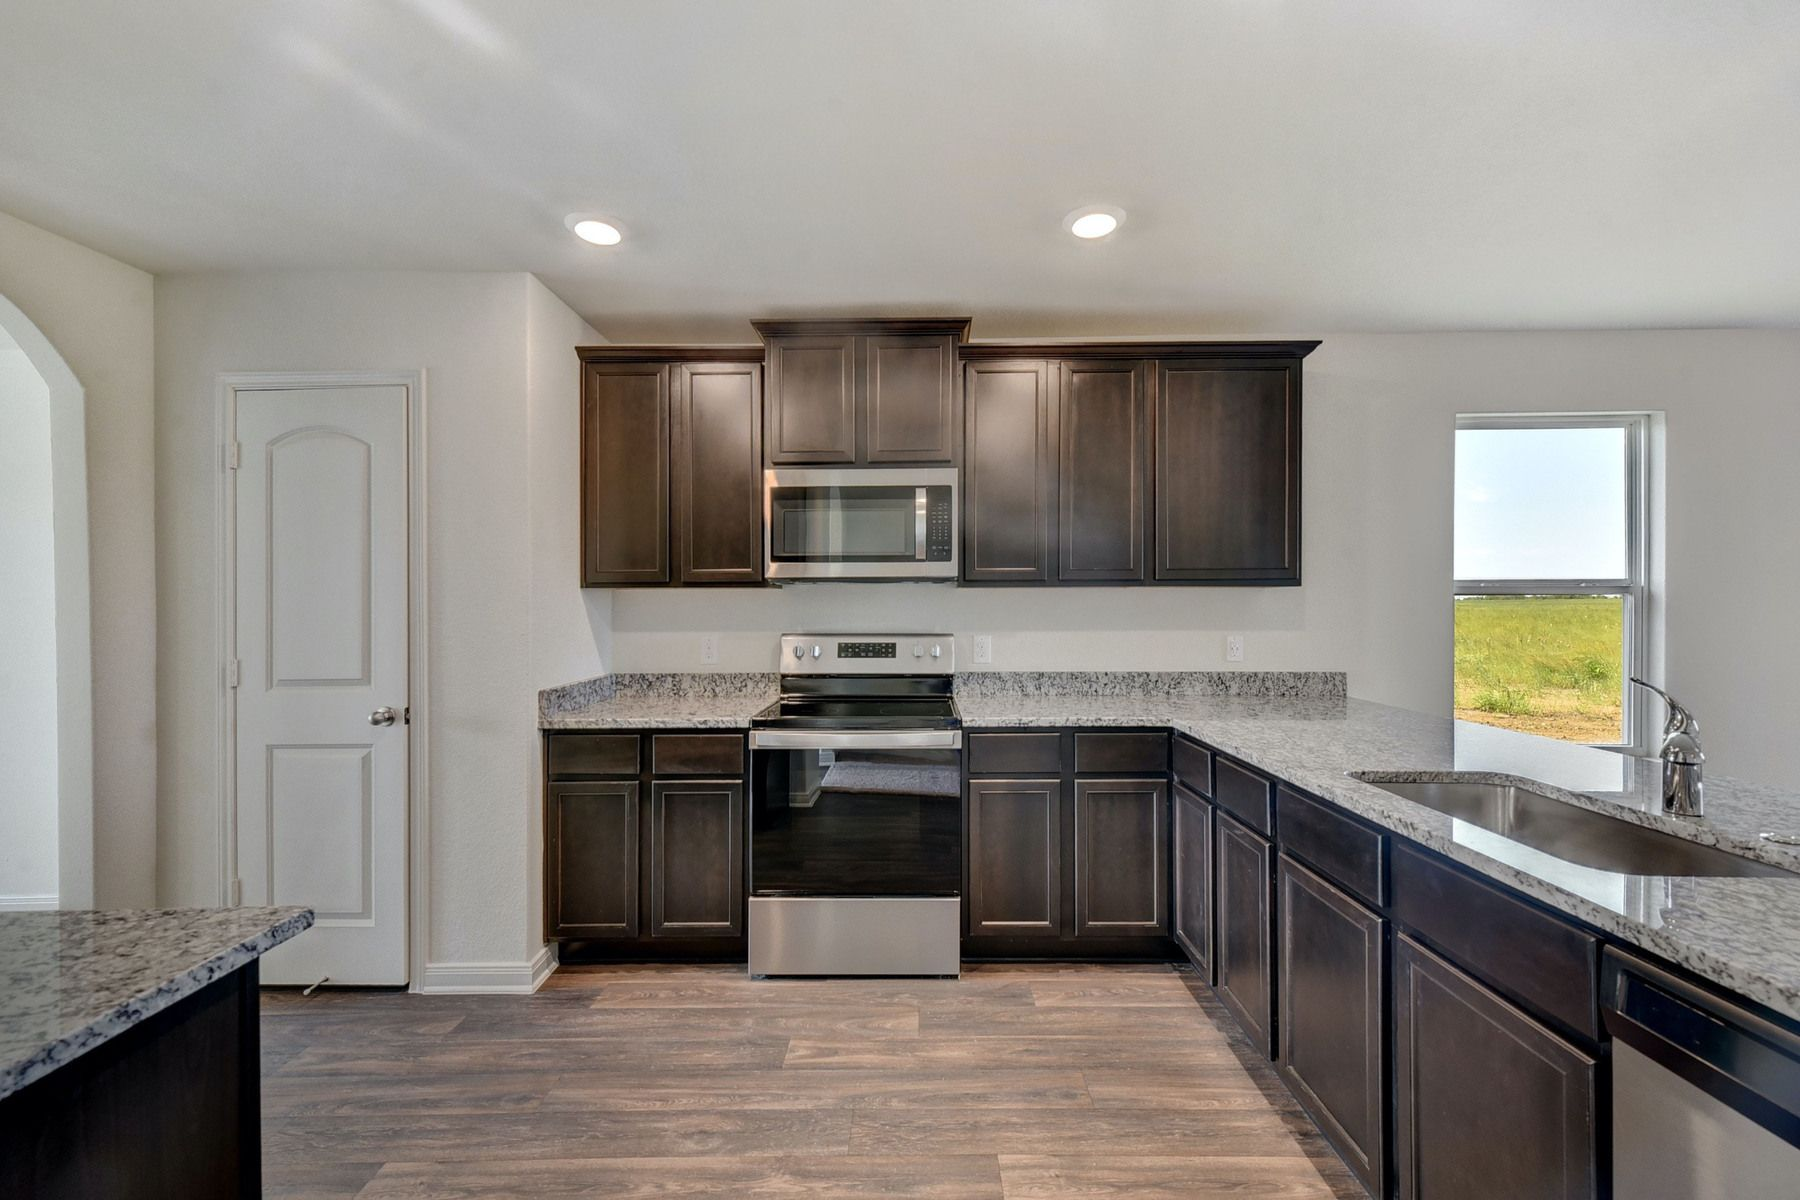 The Frio Plan by LGI Homes:The kitchen comes with a full suite of energy-efficient appliances!